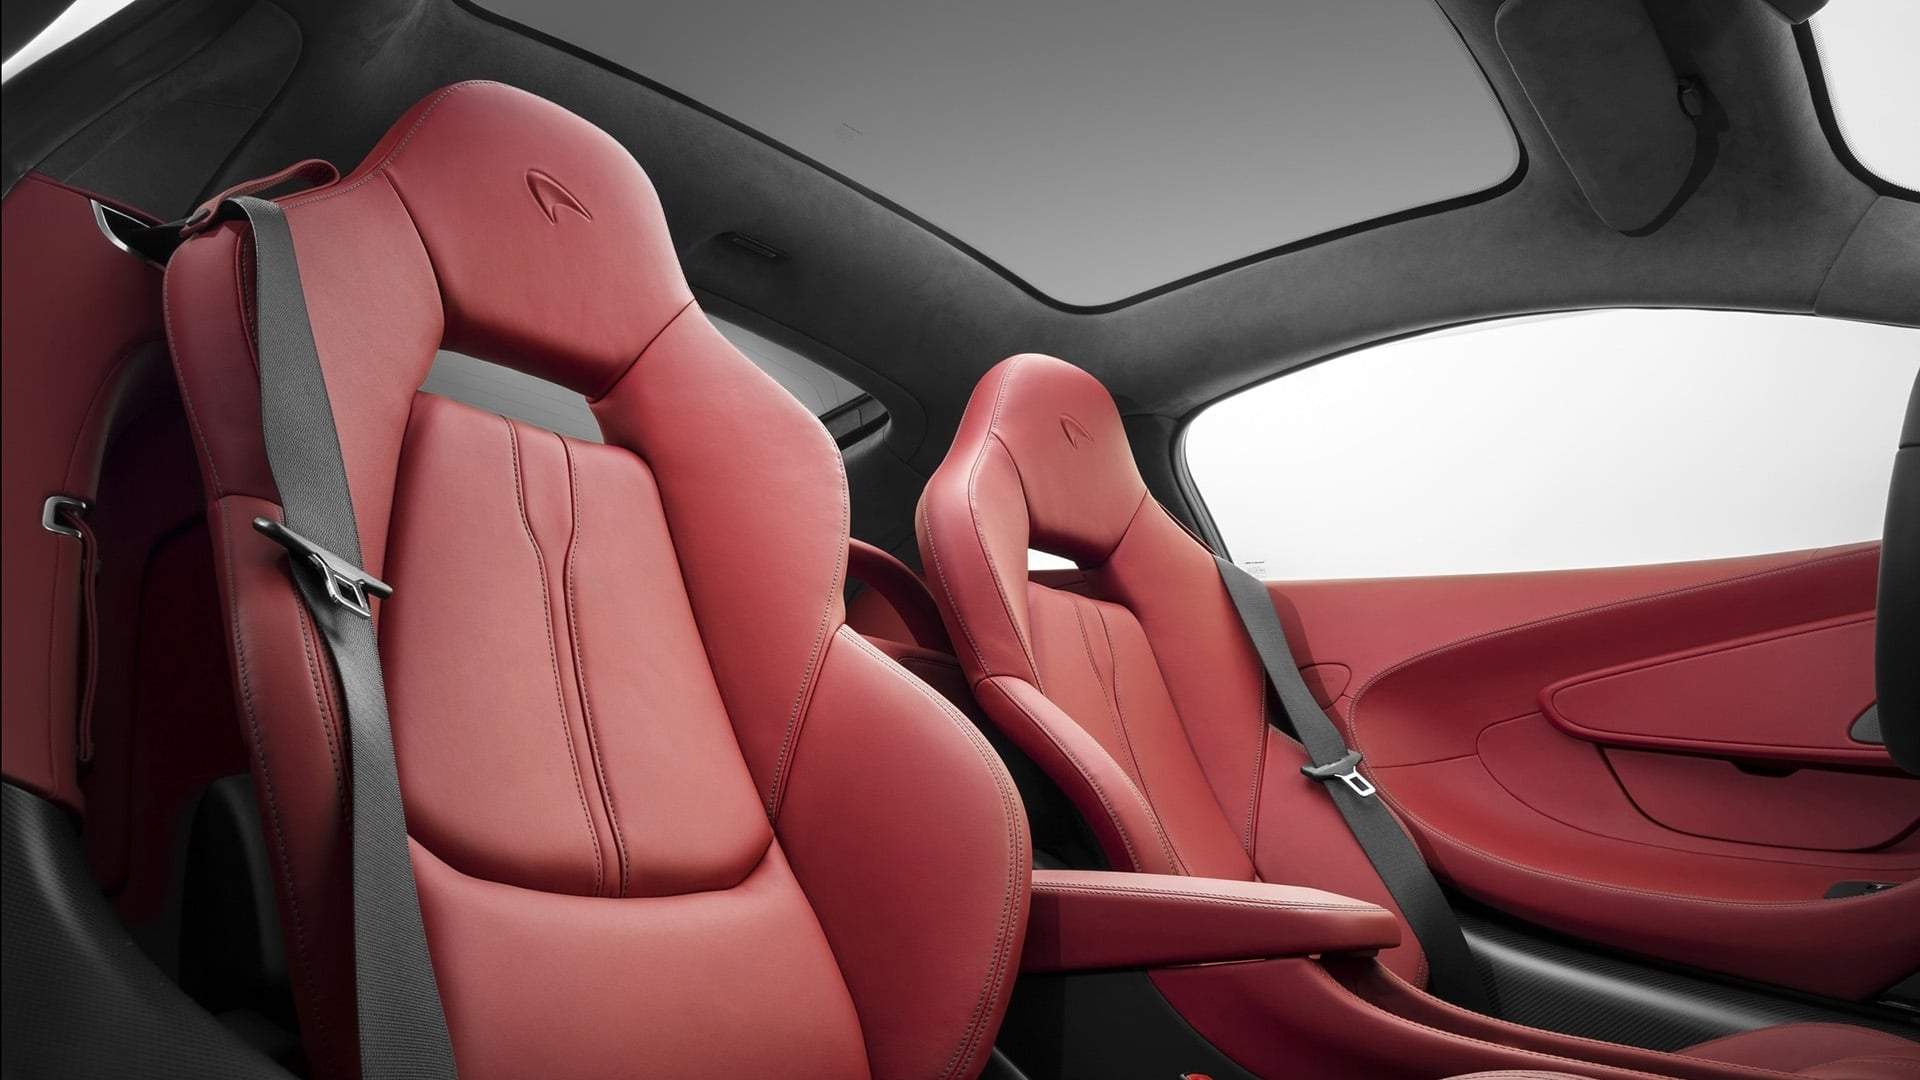 Awesome 2016 McLaren 570GT interior pictures